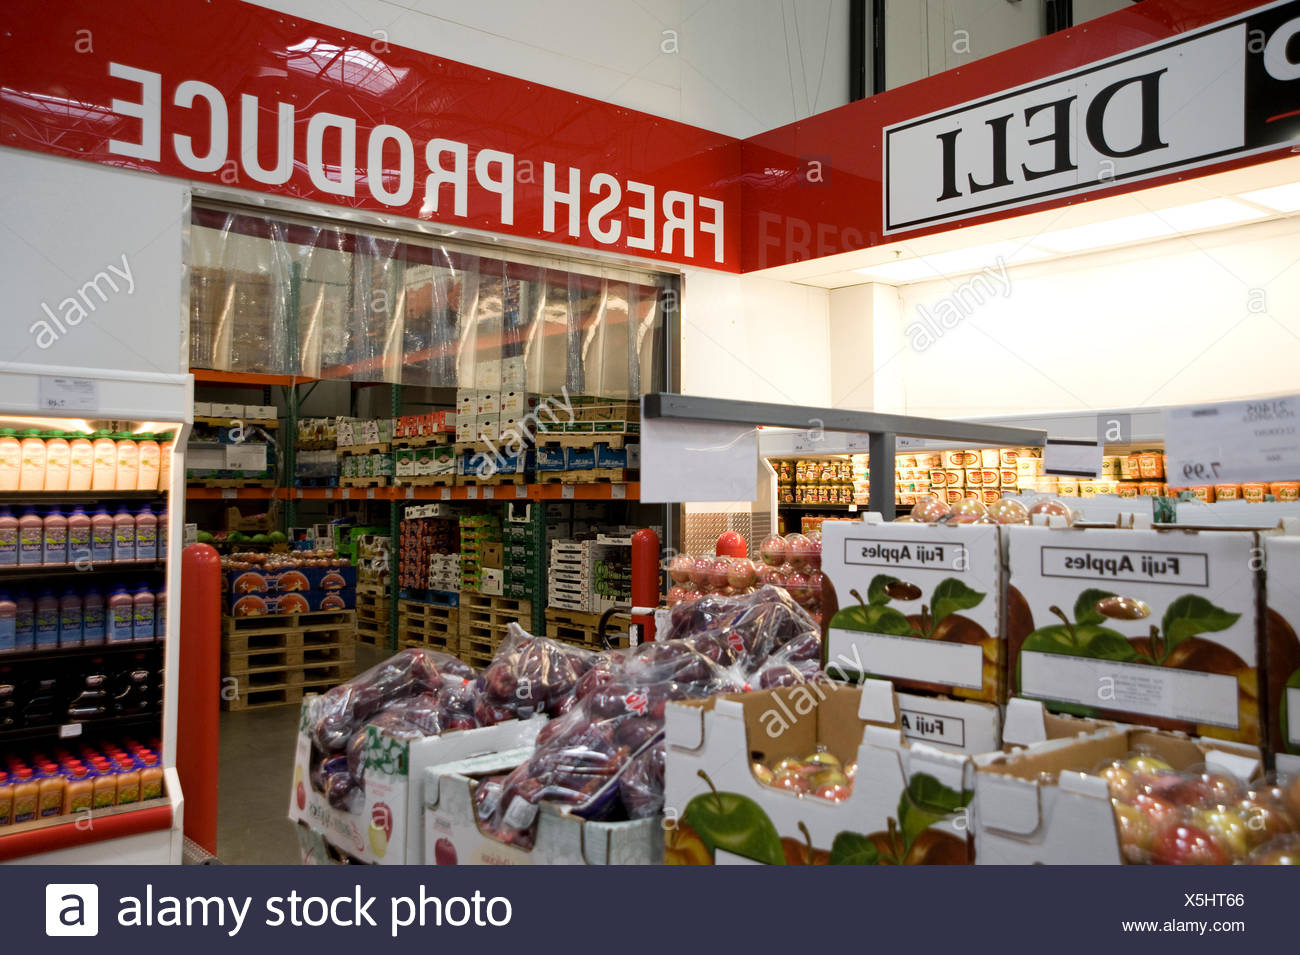 d15853877b Costco Superstore Stock Photos   Costco Superstore Stock Images - Alamy